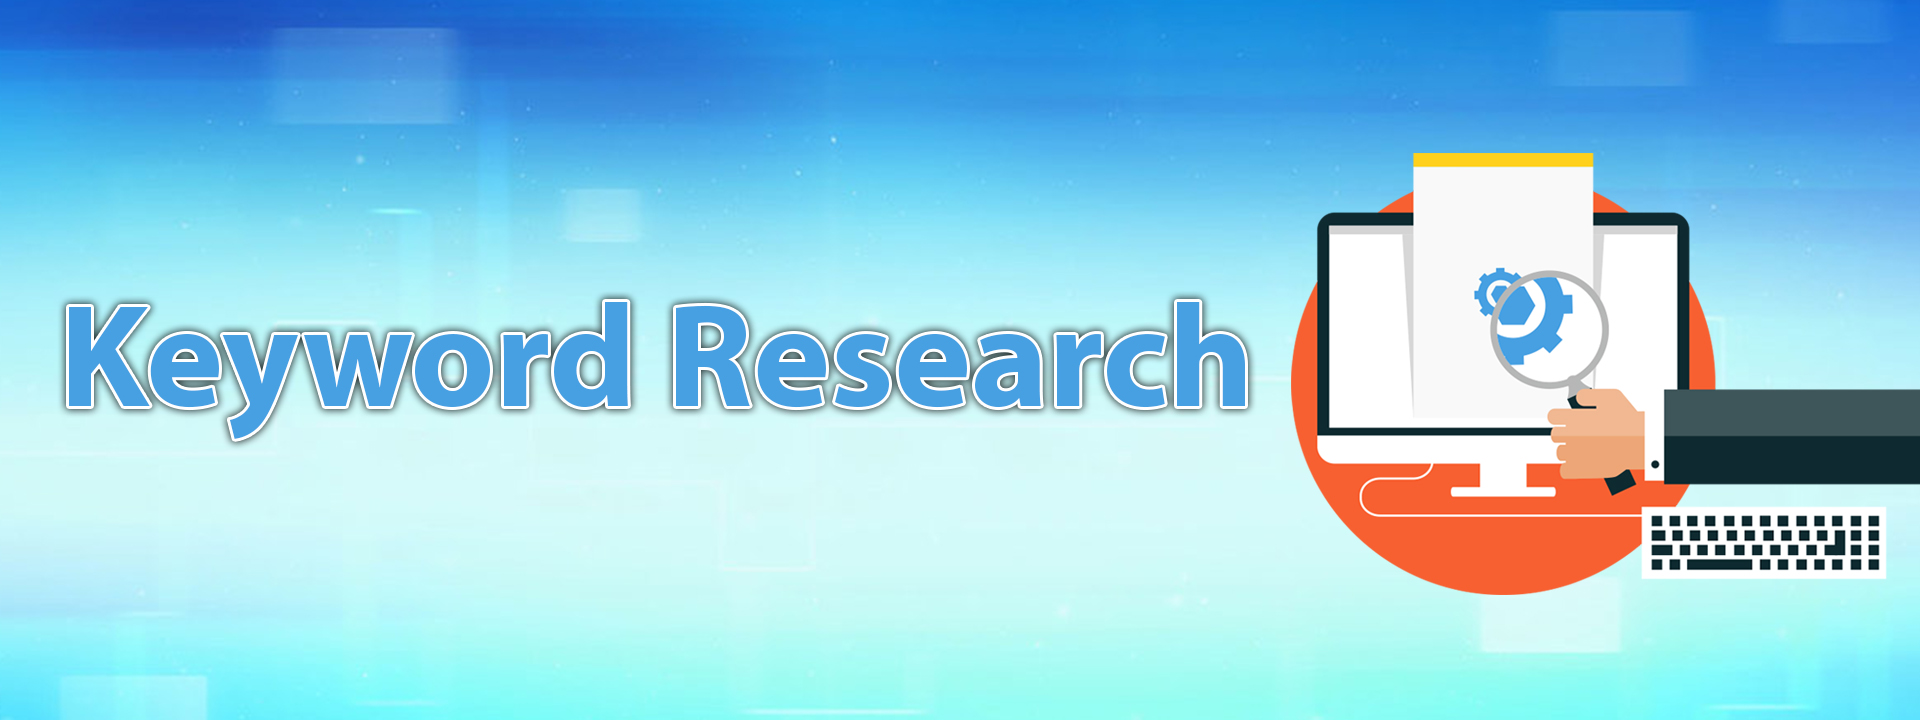 Keyword Research - Artech Digital